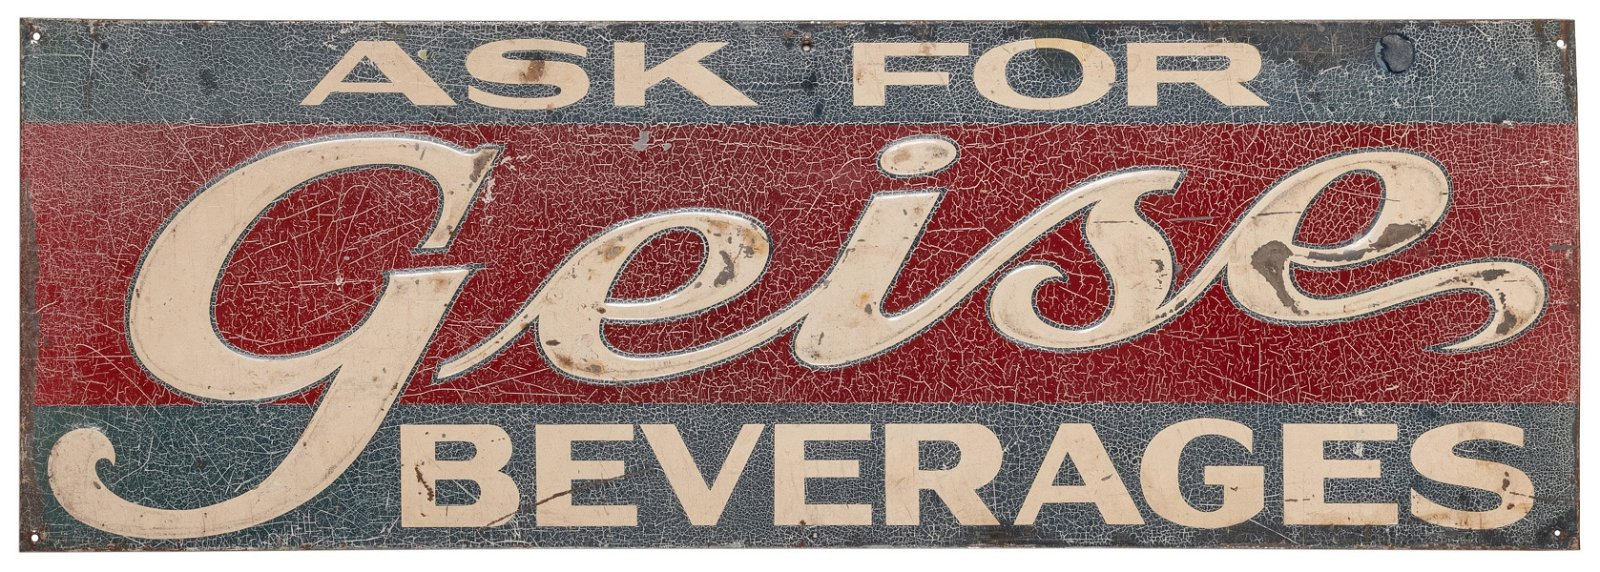 Geise Beverages Sign. 1940s. Embossed tin sign in